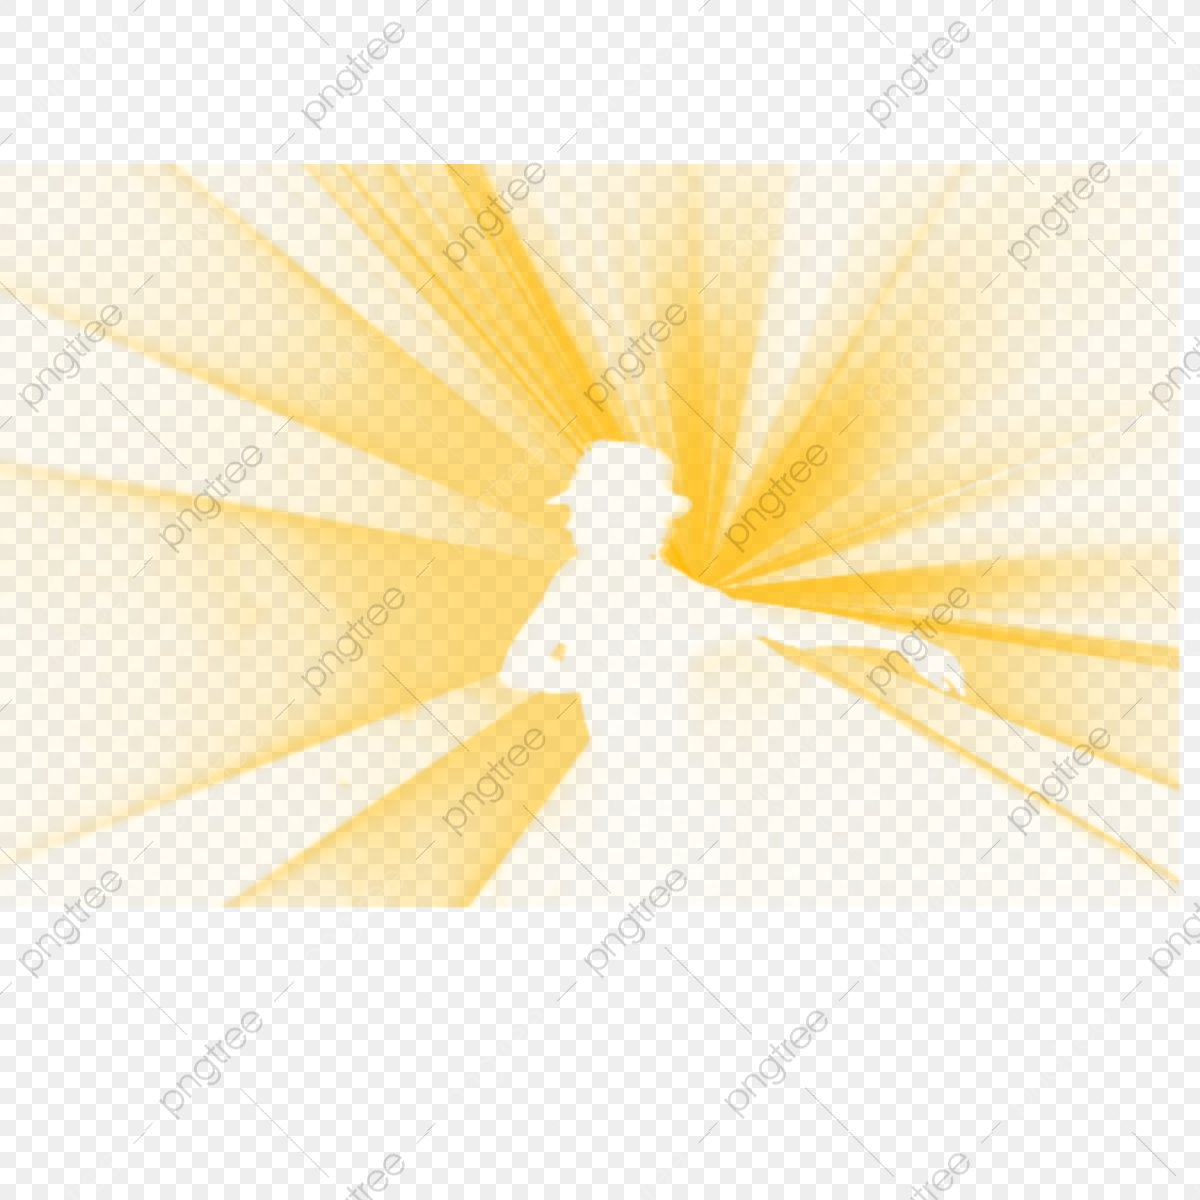 Sunlight Beam Effect Photoshop Png Free Psd, Light Png For Picsart.